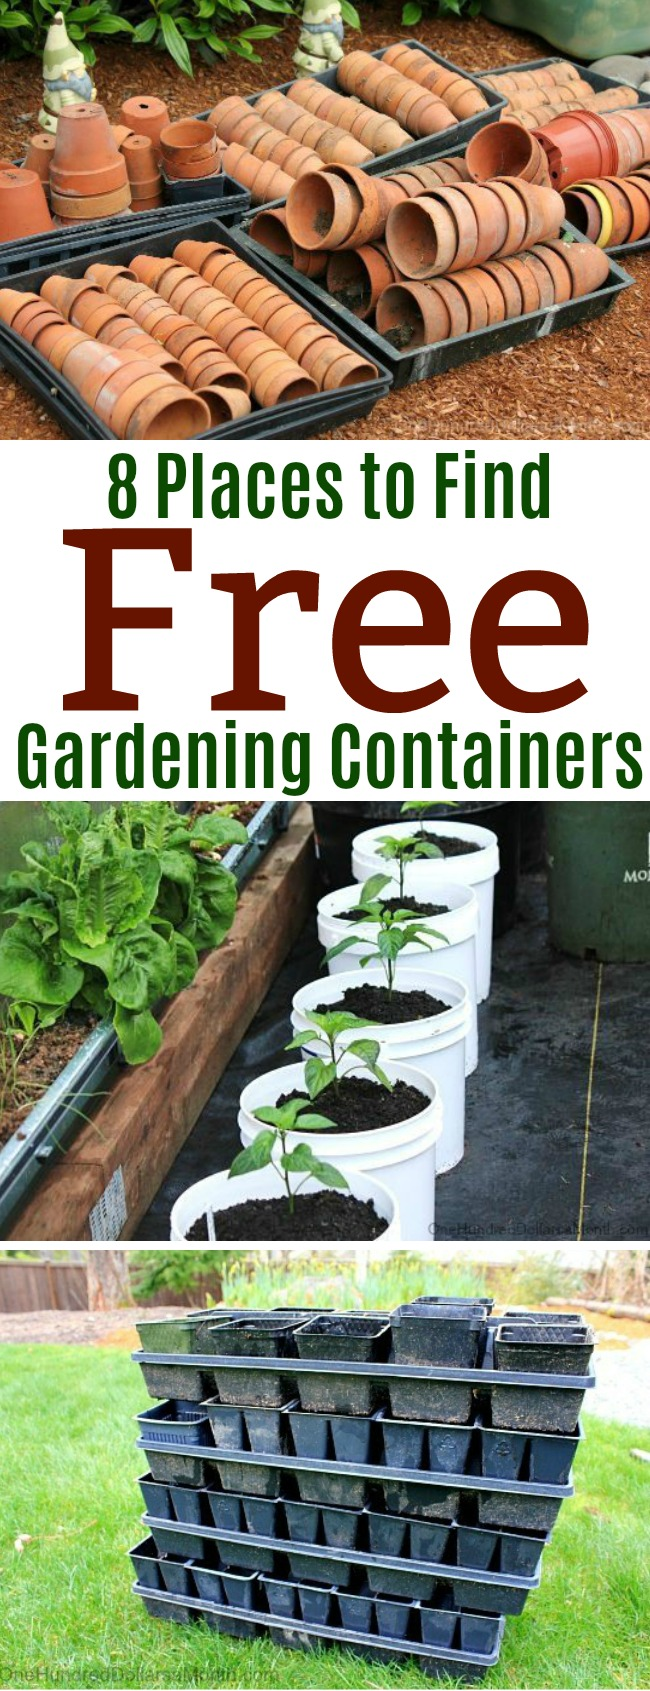 8 places to find free gardening containers - one hundred